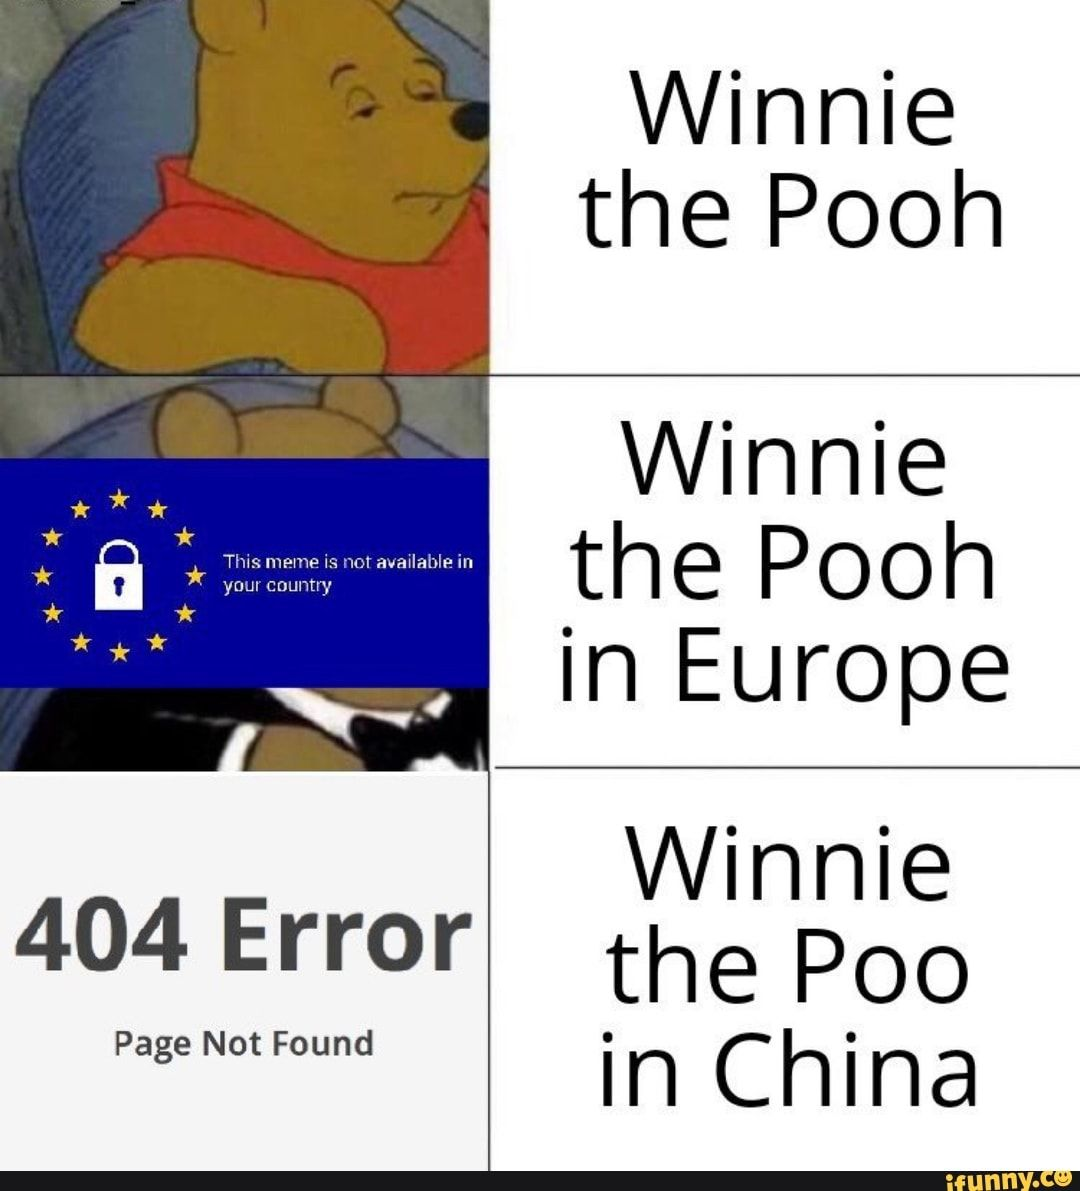 Winnie The Pooh Winnie The Pooh In Europe Winnie 404 Error The Poo In China Ifunny Funny Texts China Funny Winnie The Pooh Memes